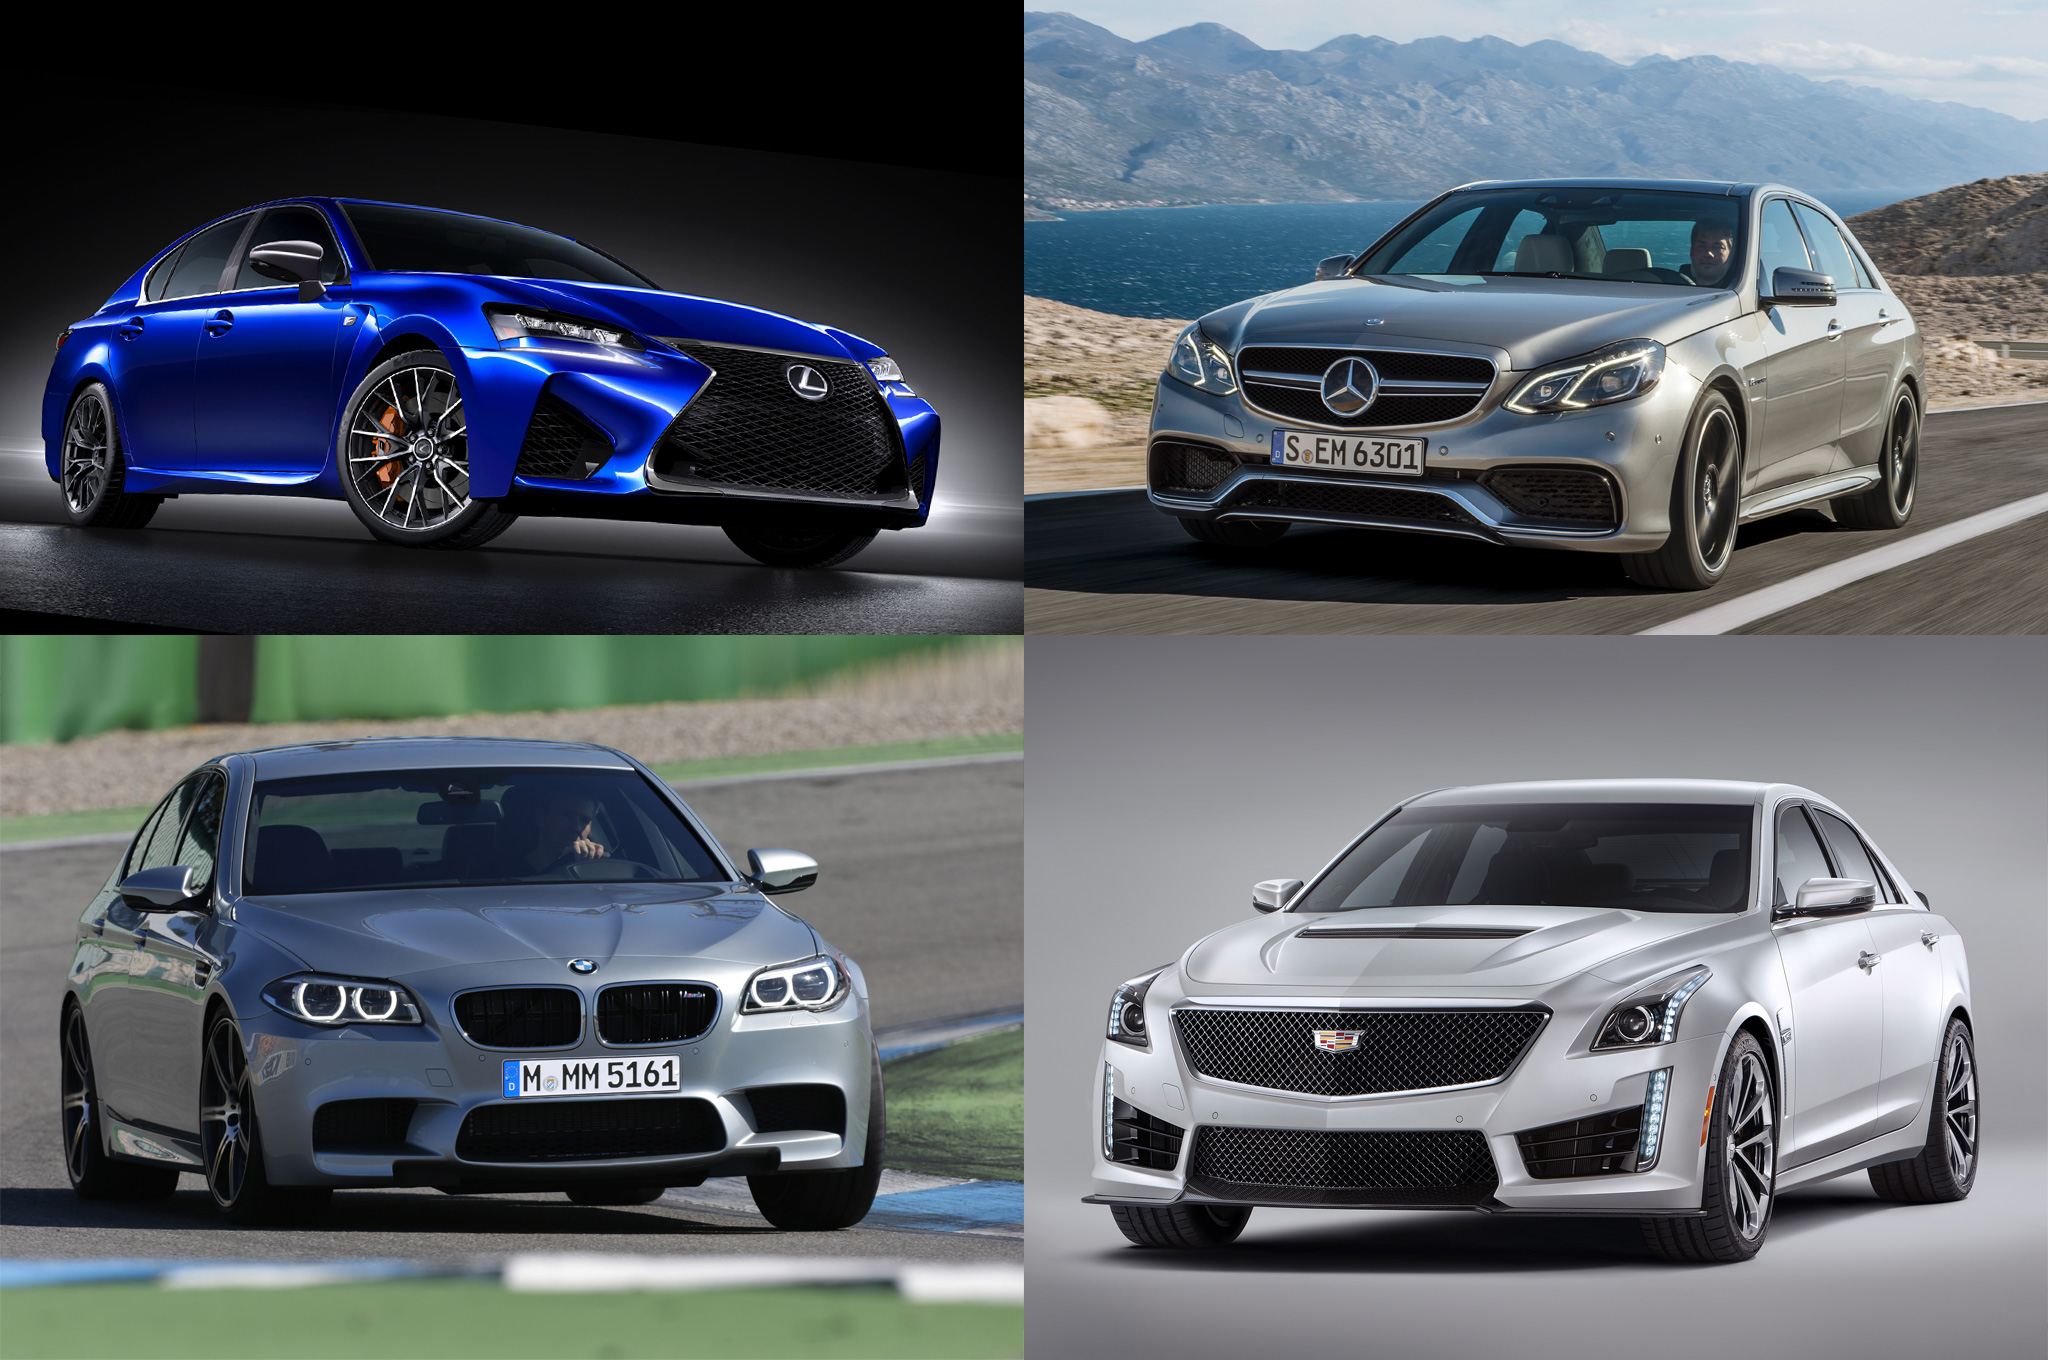 Charming Styling Size Up: Lexus GS F Vs. BMW M5, Cadillac CTS V, Mercedes E63